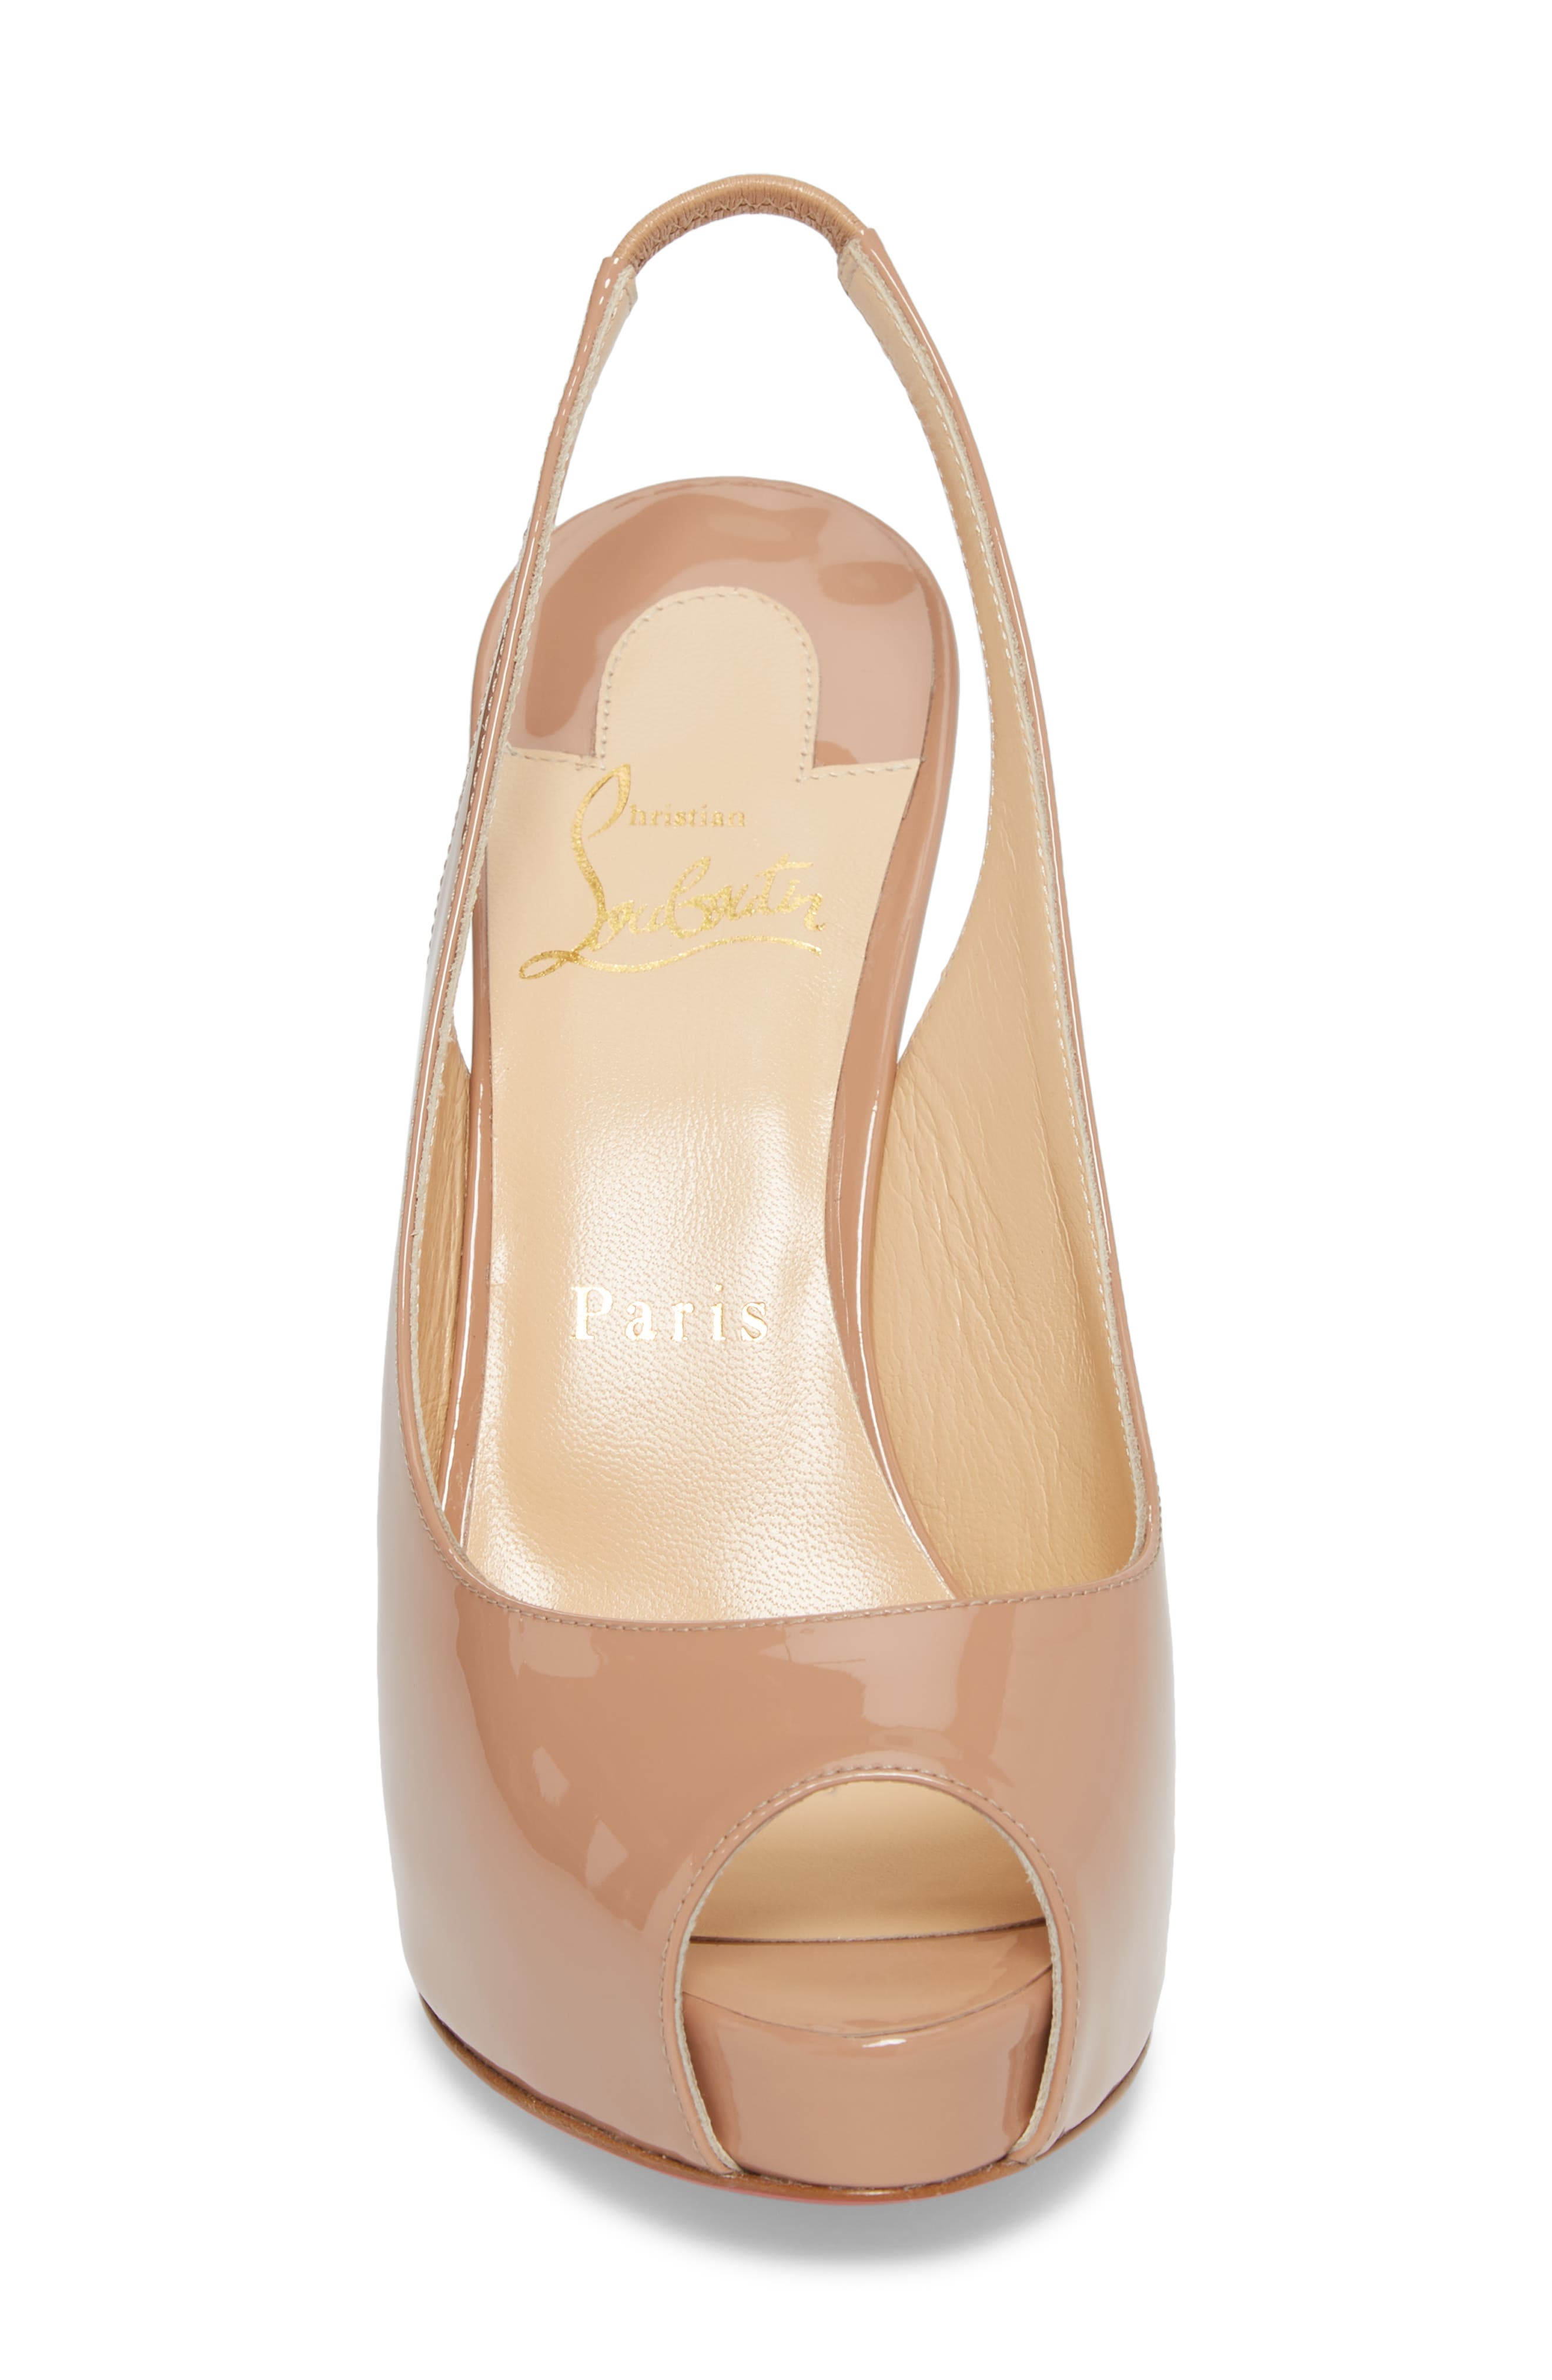 CHRISTIAN LOUBOUTIN,                             Private Number Peep Toe Pump,                             Alternate thumbnail 4, color,                             NUDE